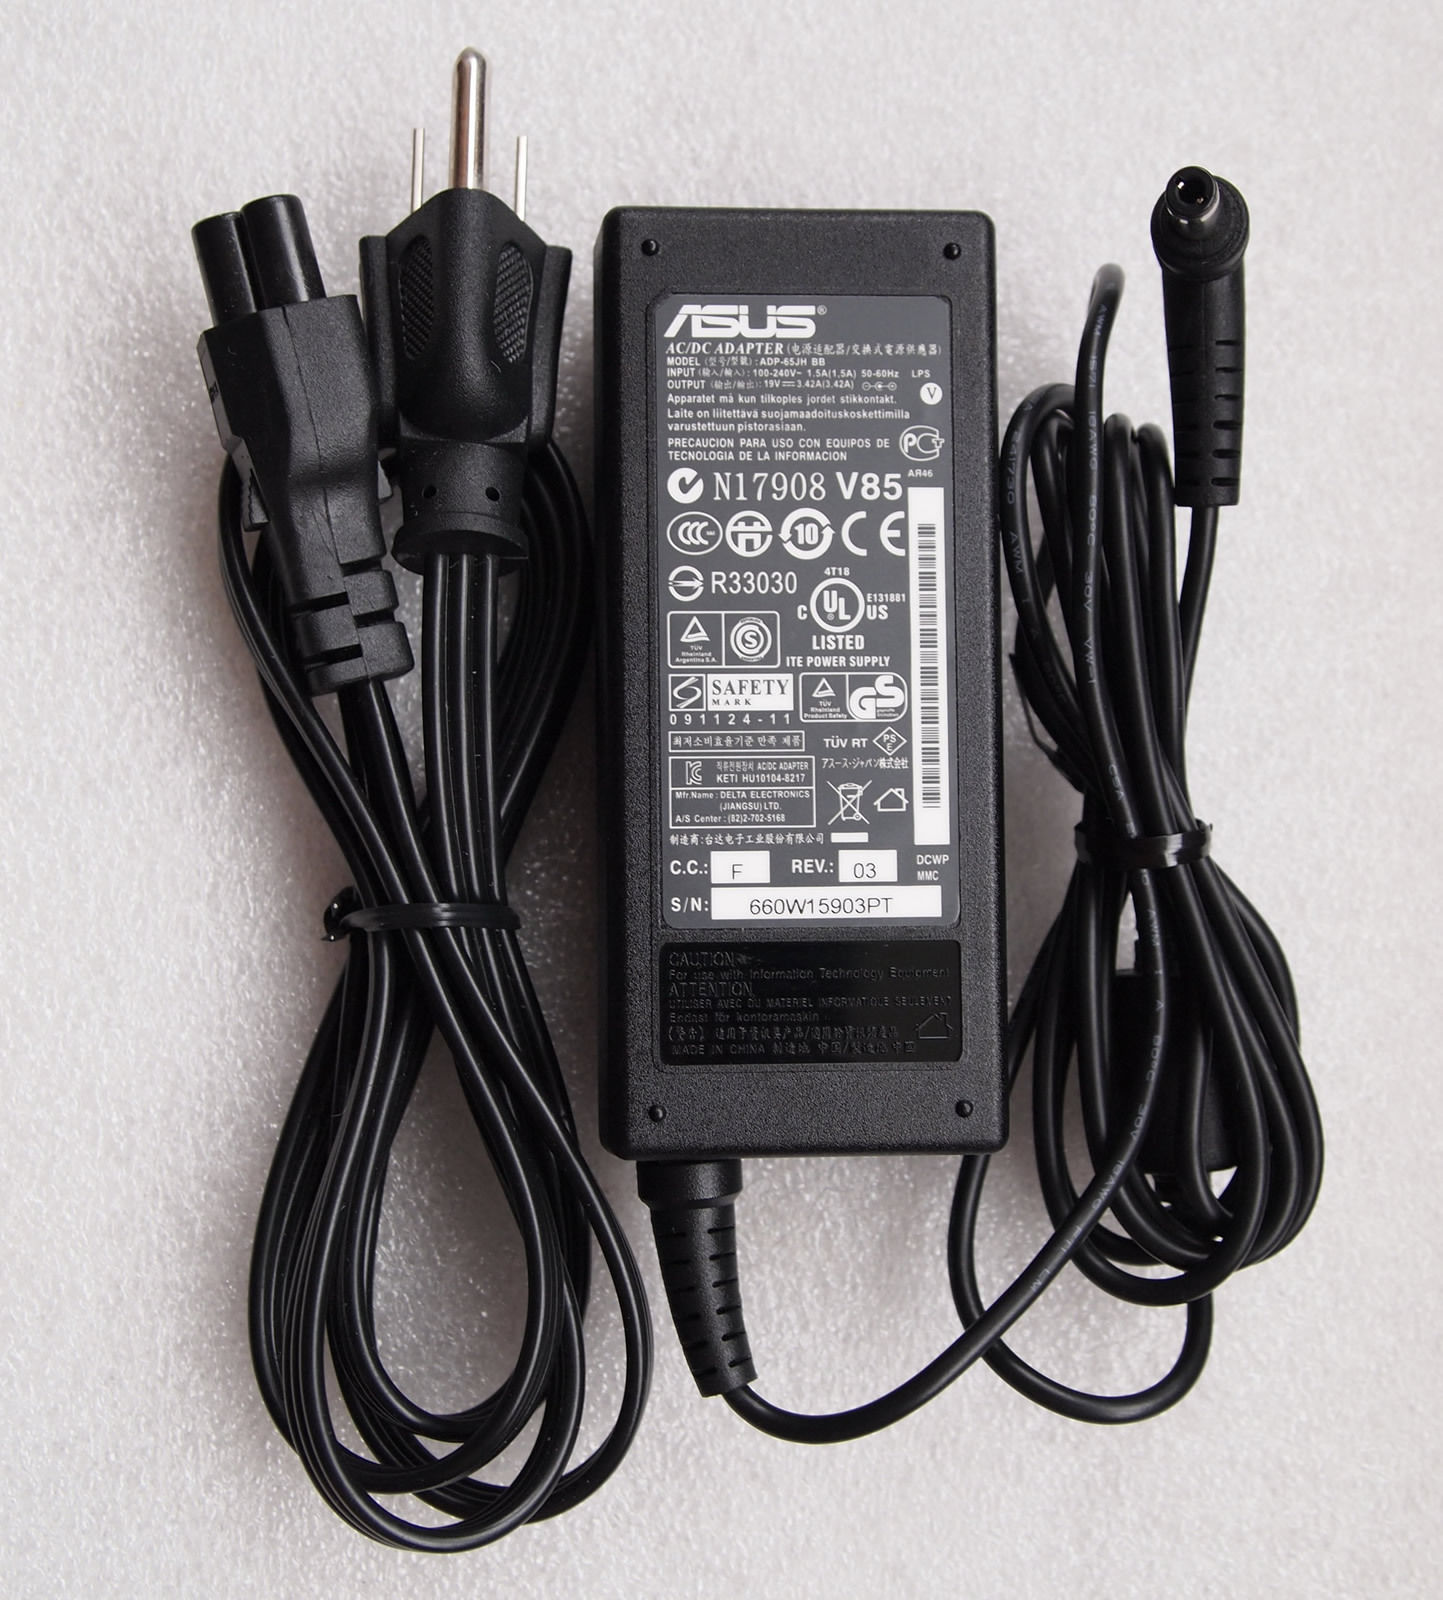 19V 3.42A AC/DC Adapter For ASUS R33030 N17908 V85 ADP-65JH